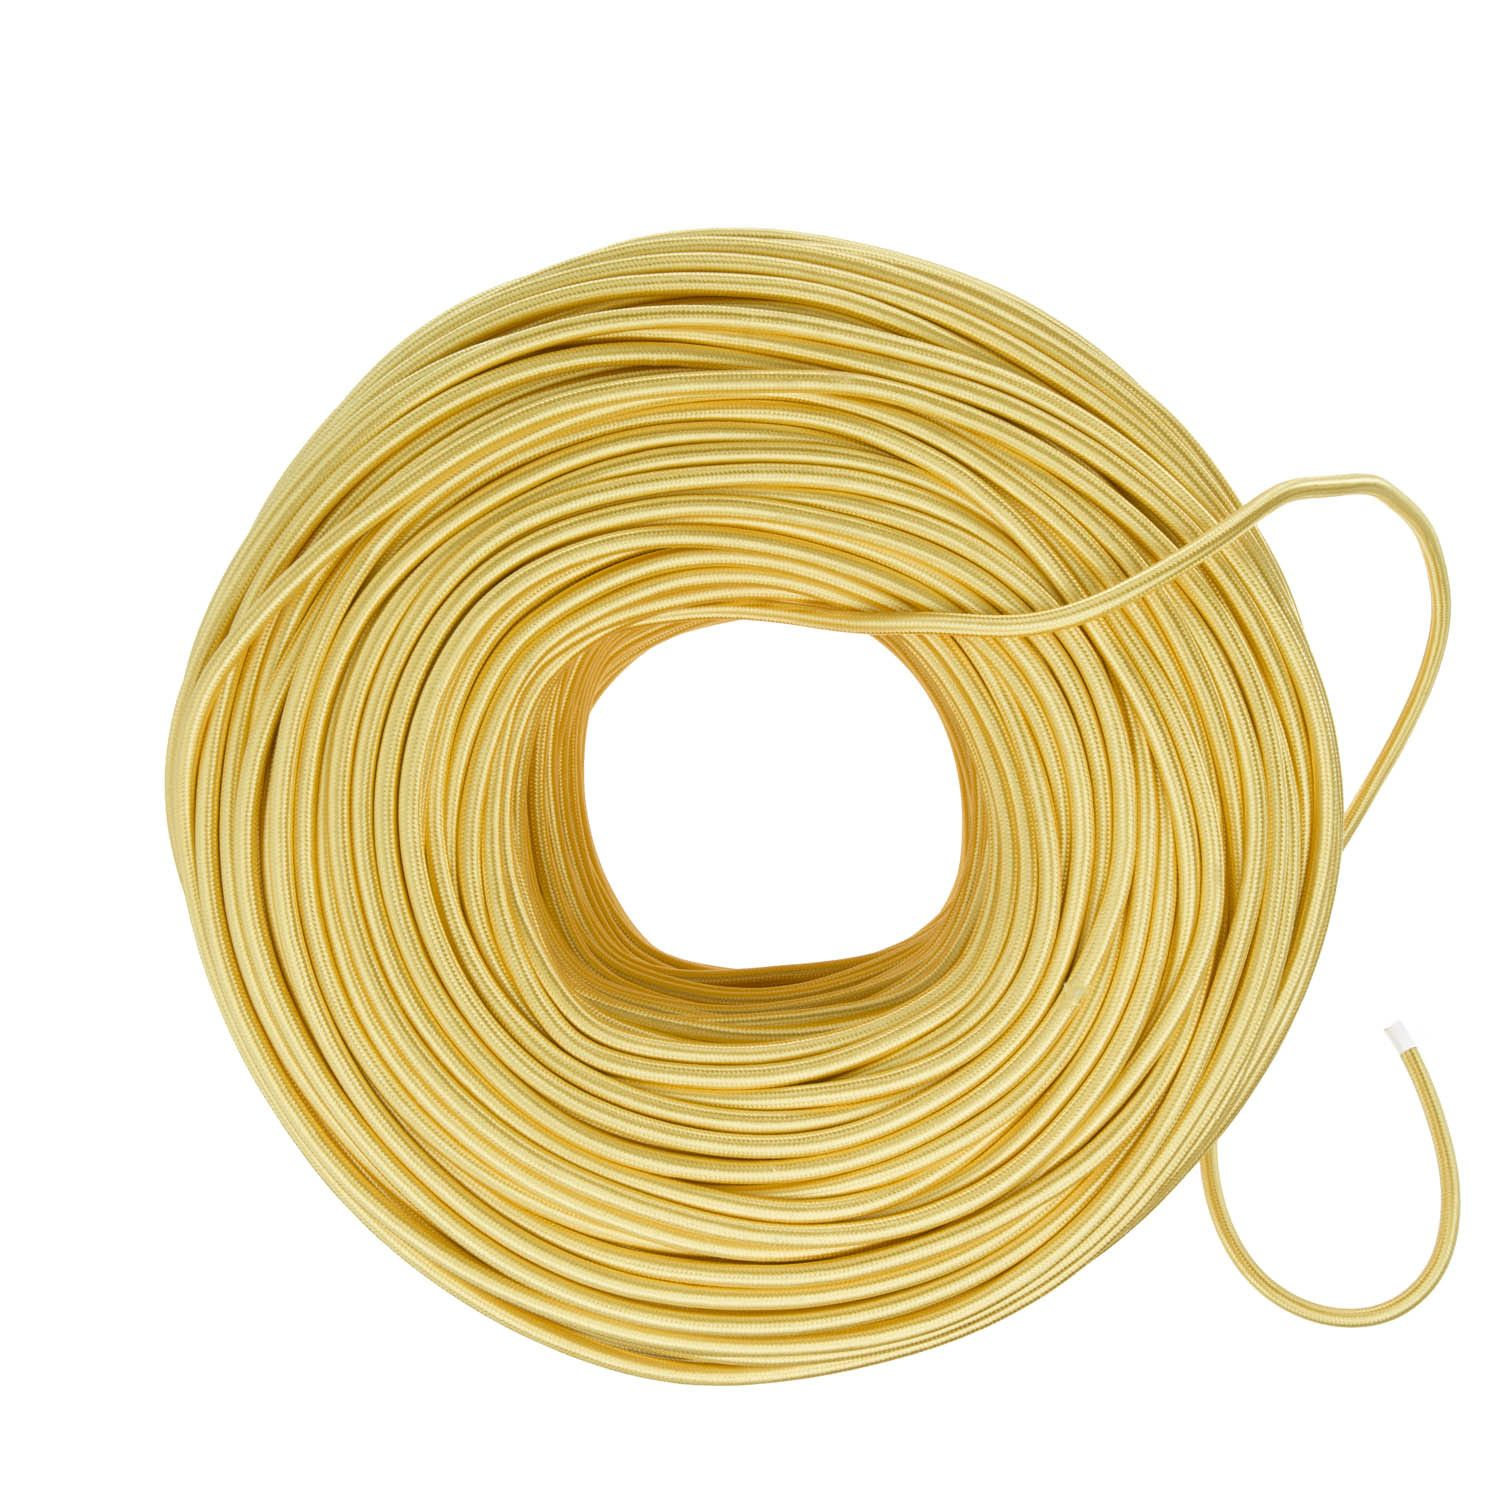 Cloth Covered Electrical Wire Yellow Gold Color Cord Company Home Wiring Cable Diy Fabric By The Foot